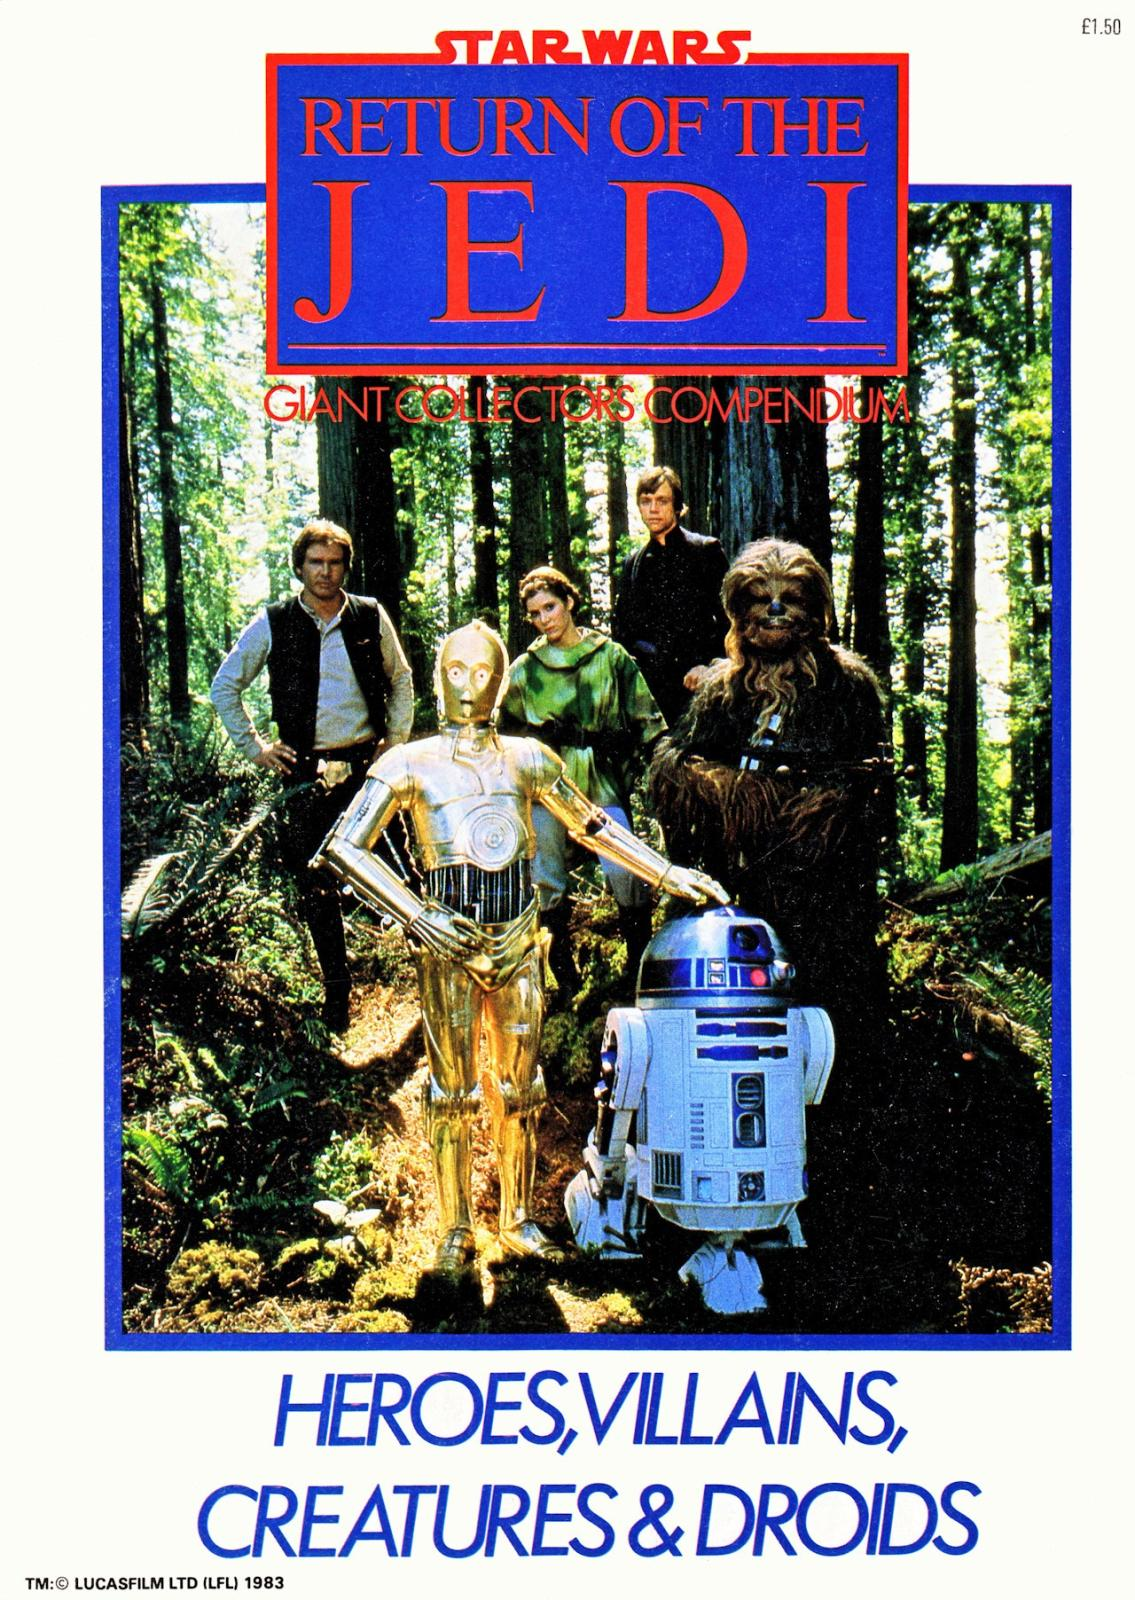 star wars return of the jedi compendium 1983